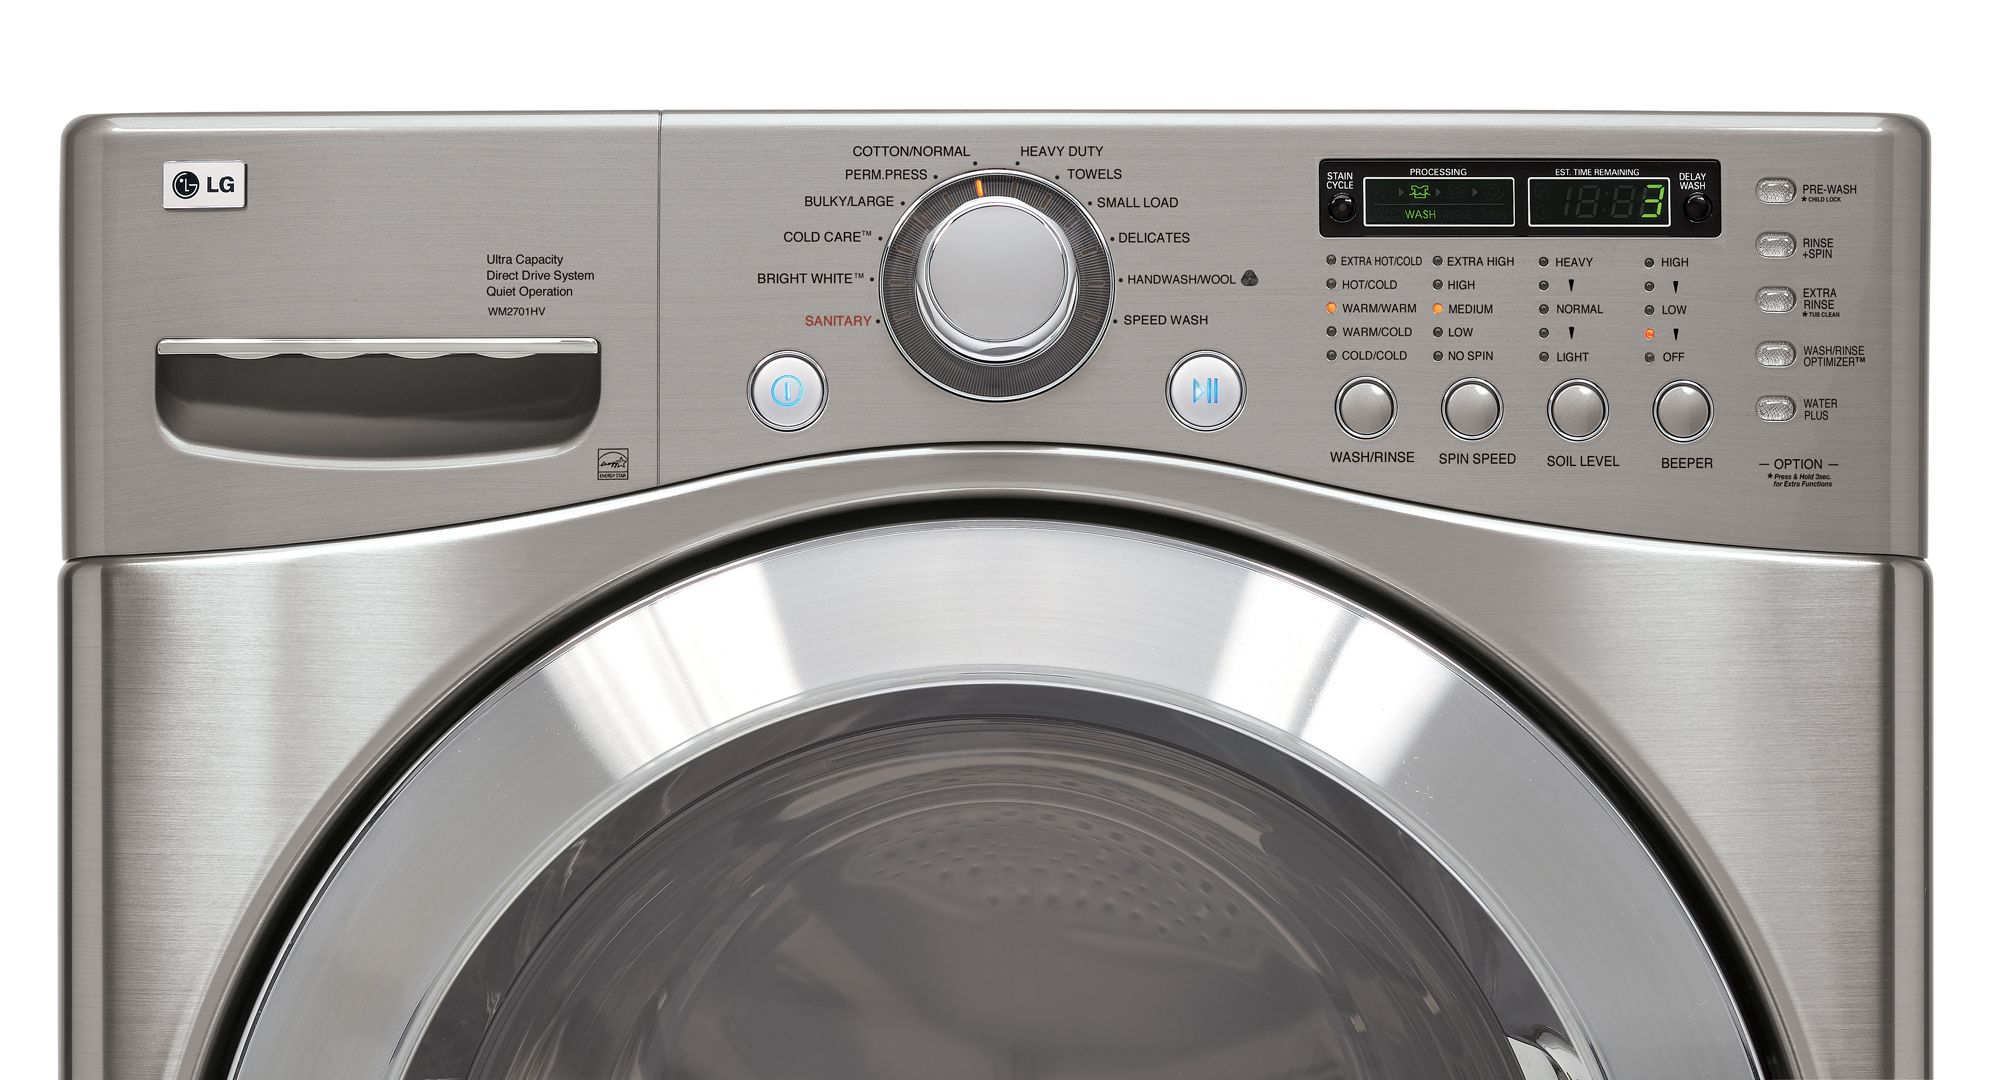 LG 3.9 cu. ft. Front-Load Washing Machine w/ TrueBalance&trade